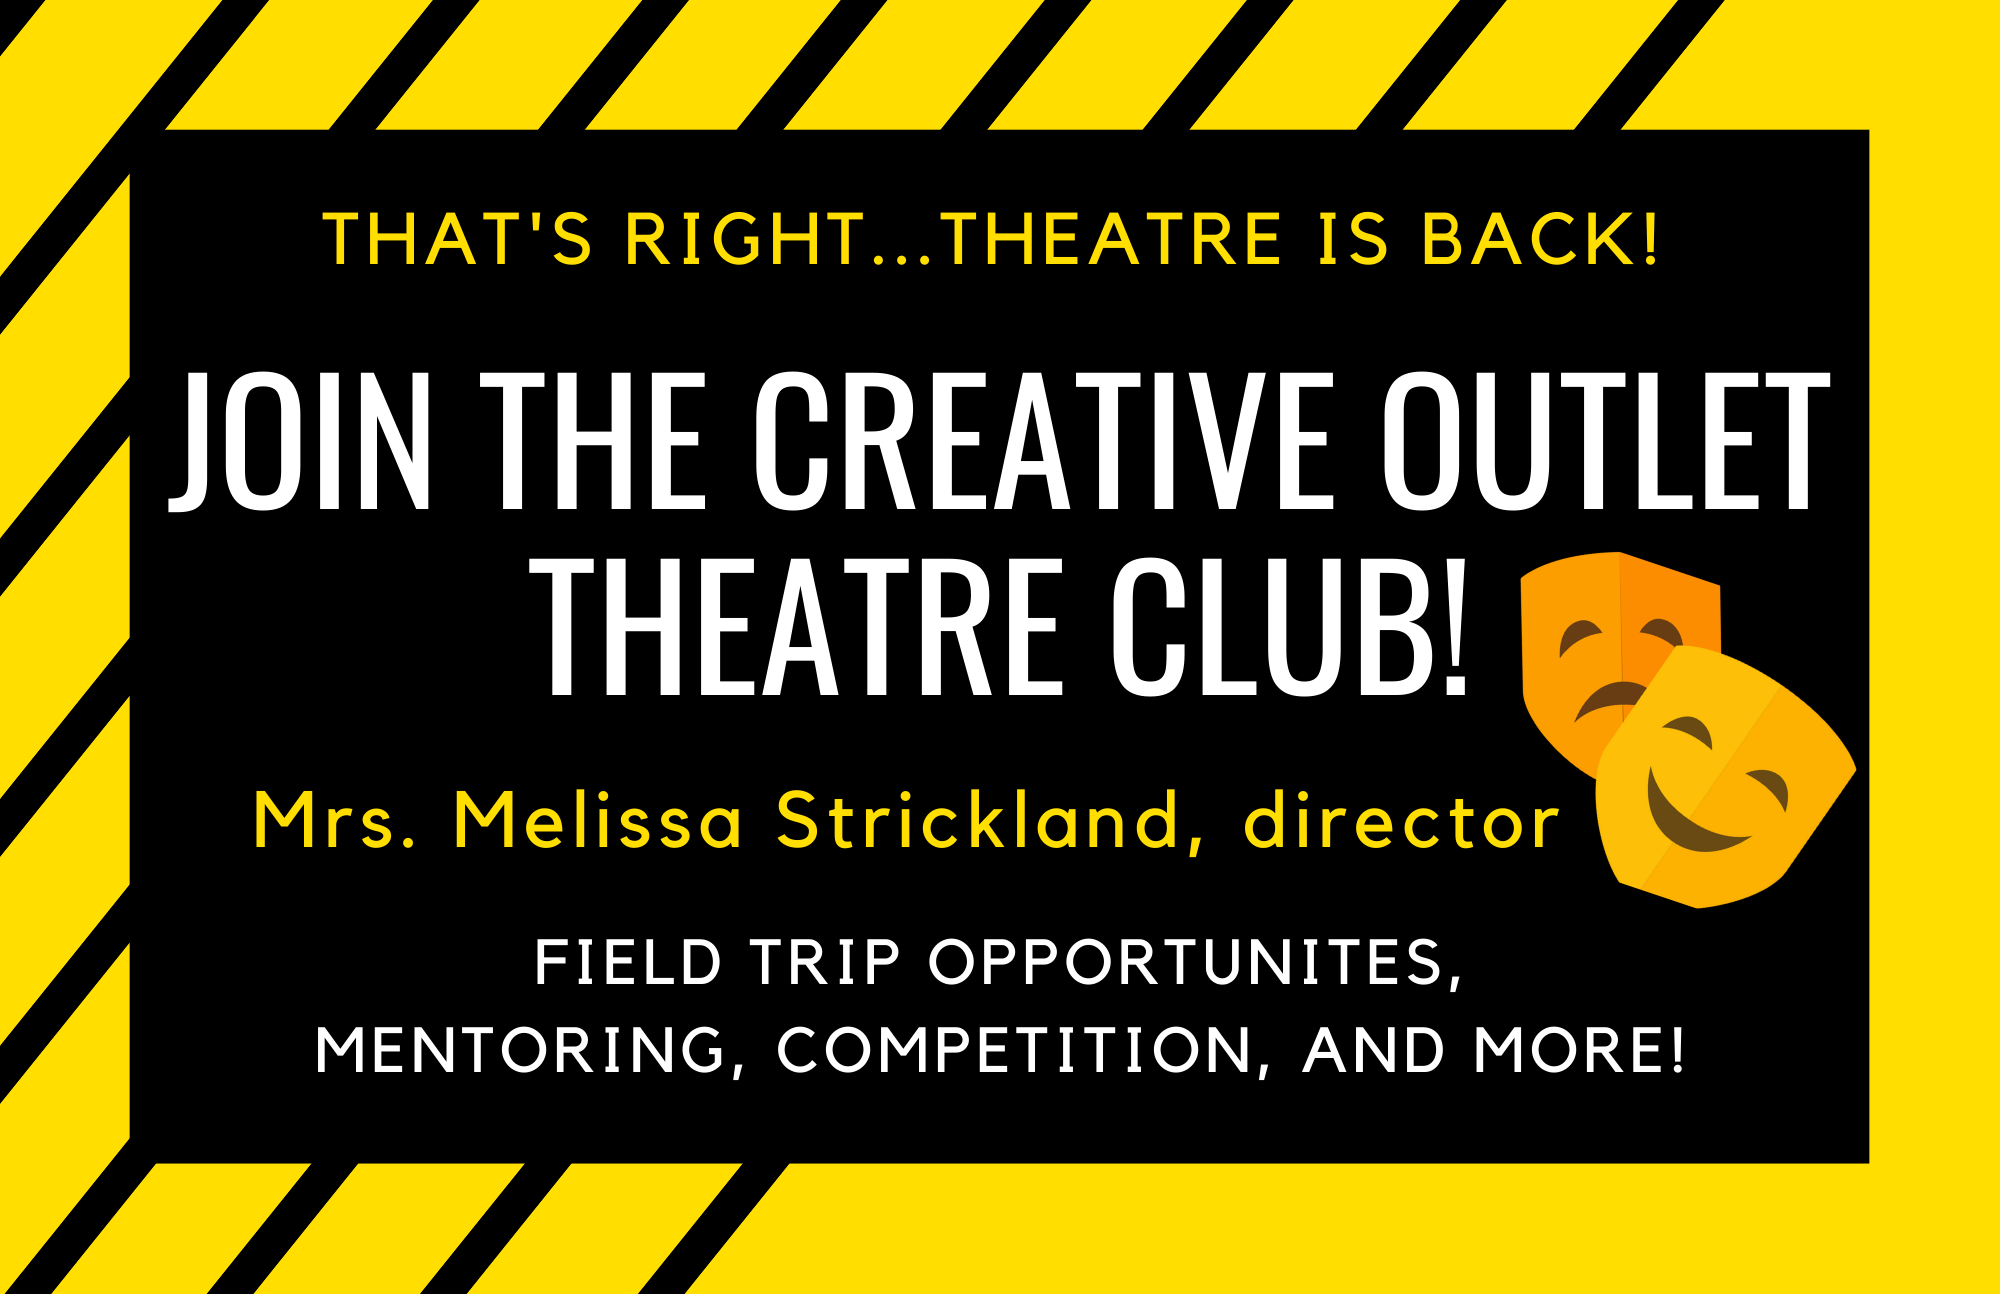 Creative Outlet Theatre Club